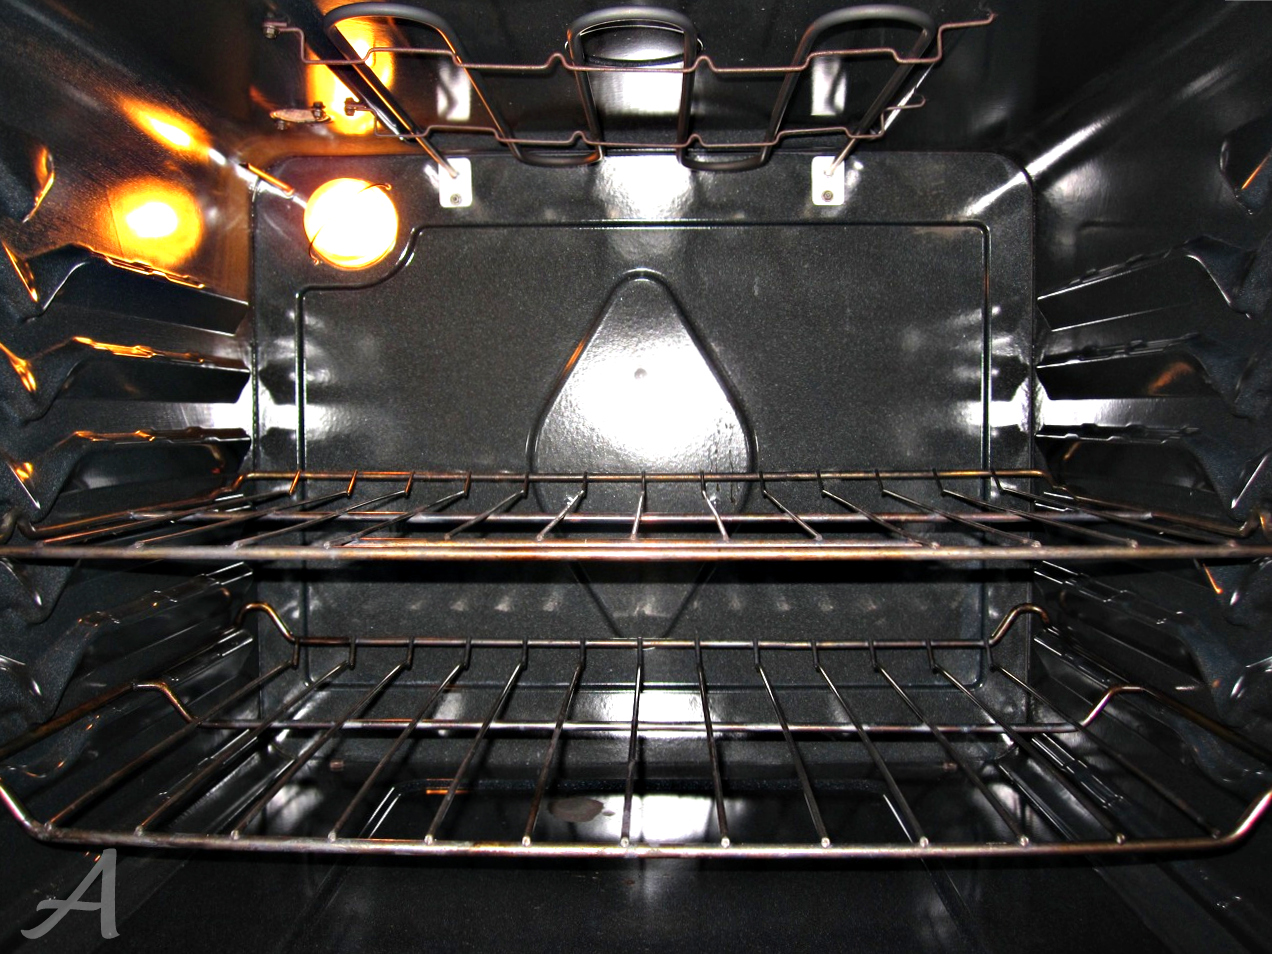 How To Get Oven Racks To Slide Easily